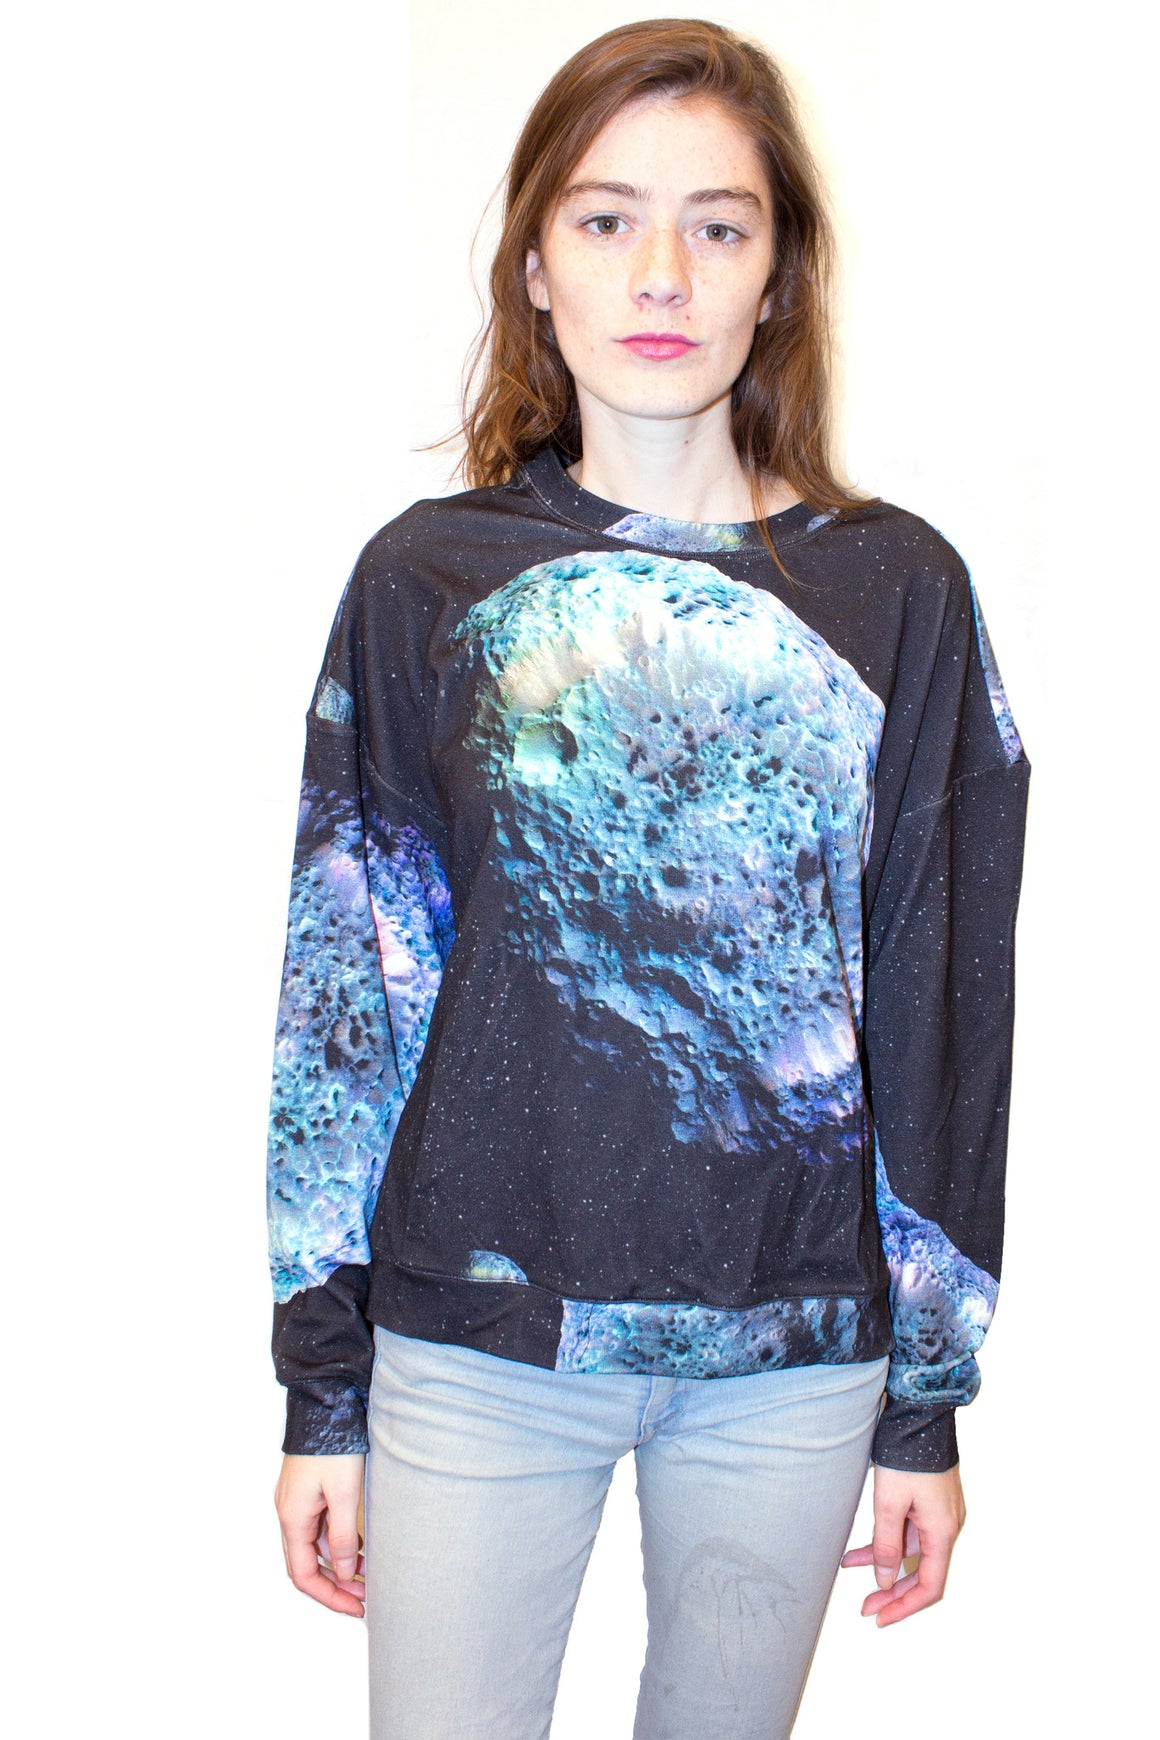 Hyperion Sweatshirt, Galaxy Sweatshirt, Shadowplay New York